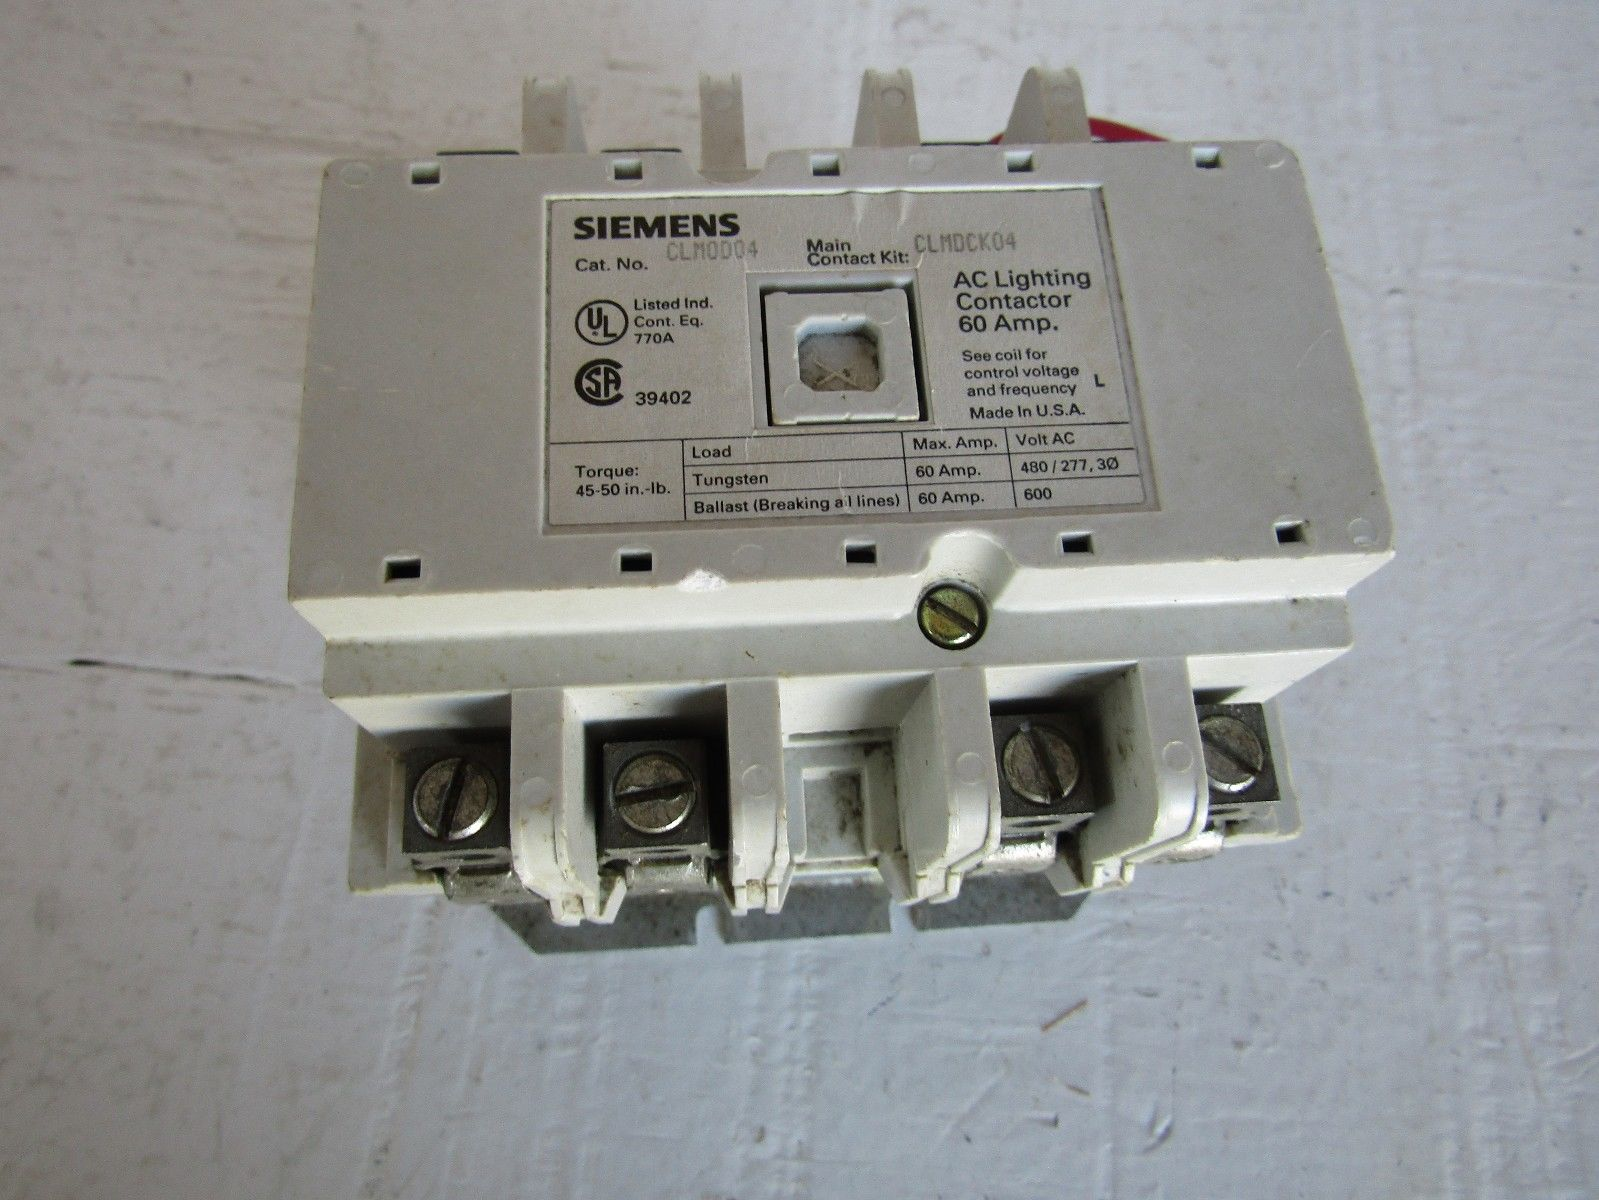 Magnetically held lighting contactor wiring cat5 internet wiring mechanically held lighting contactor diagram new wiring new siemens clm0d04 4 pole 60a lighting and heating cheapraybanclubmaster Images